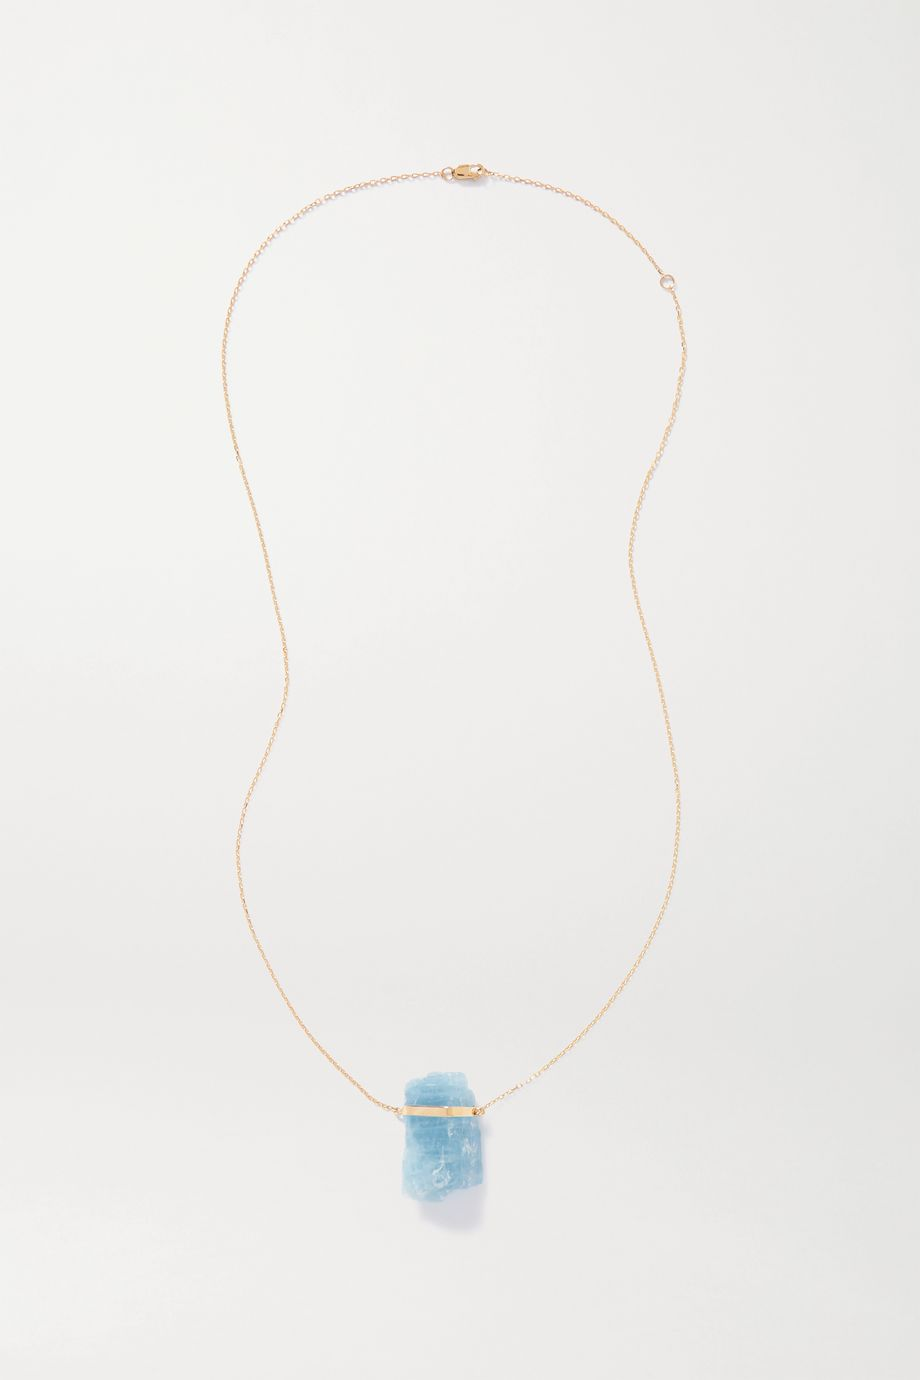 JIA JIA 14-karat gold aquamarine necklace